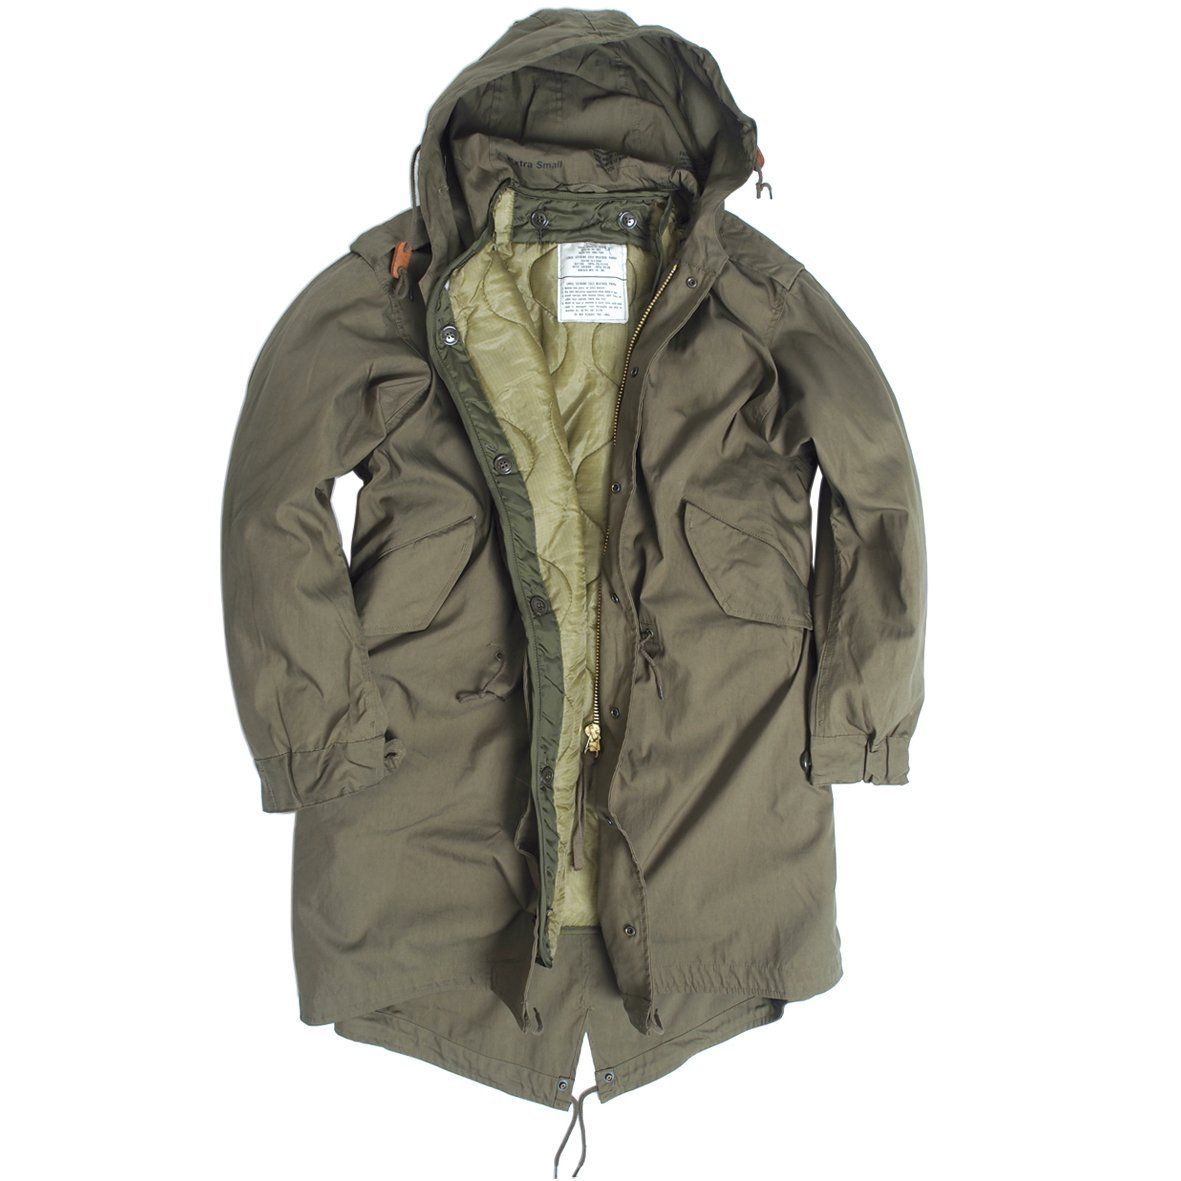 U.S. SHELL HOODED PARKA M51 M.FU.OLIVE - Size M: Amazon.co.uk ...